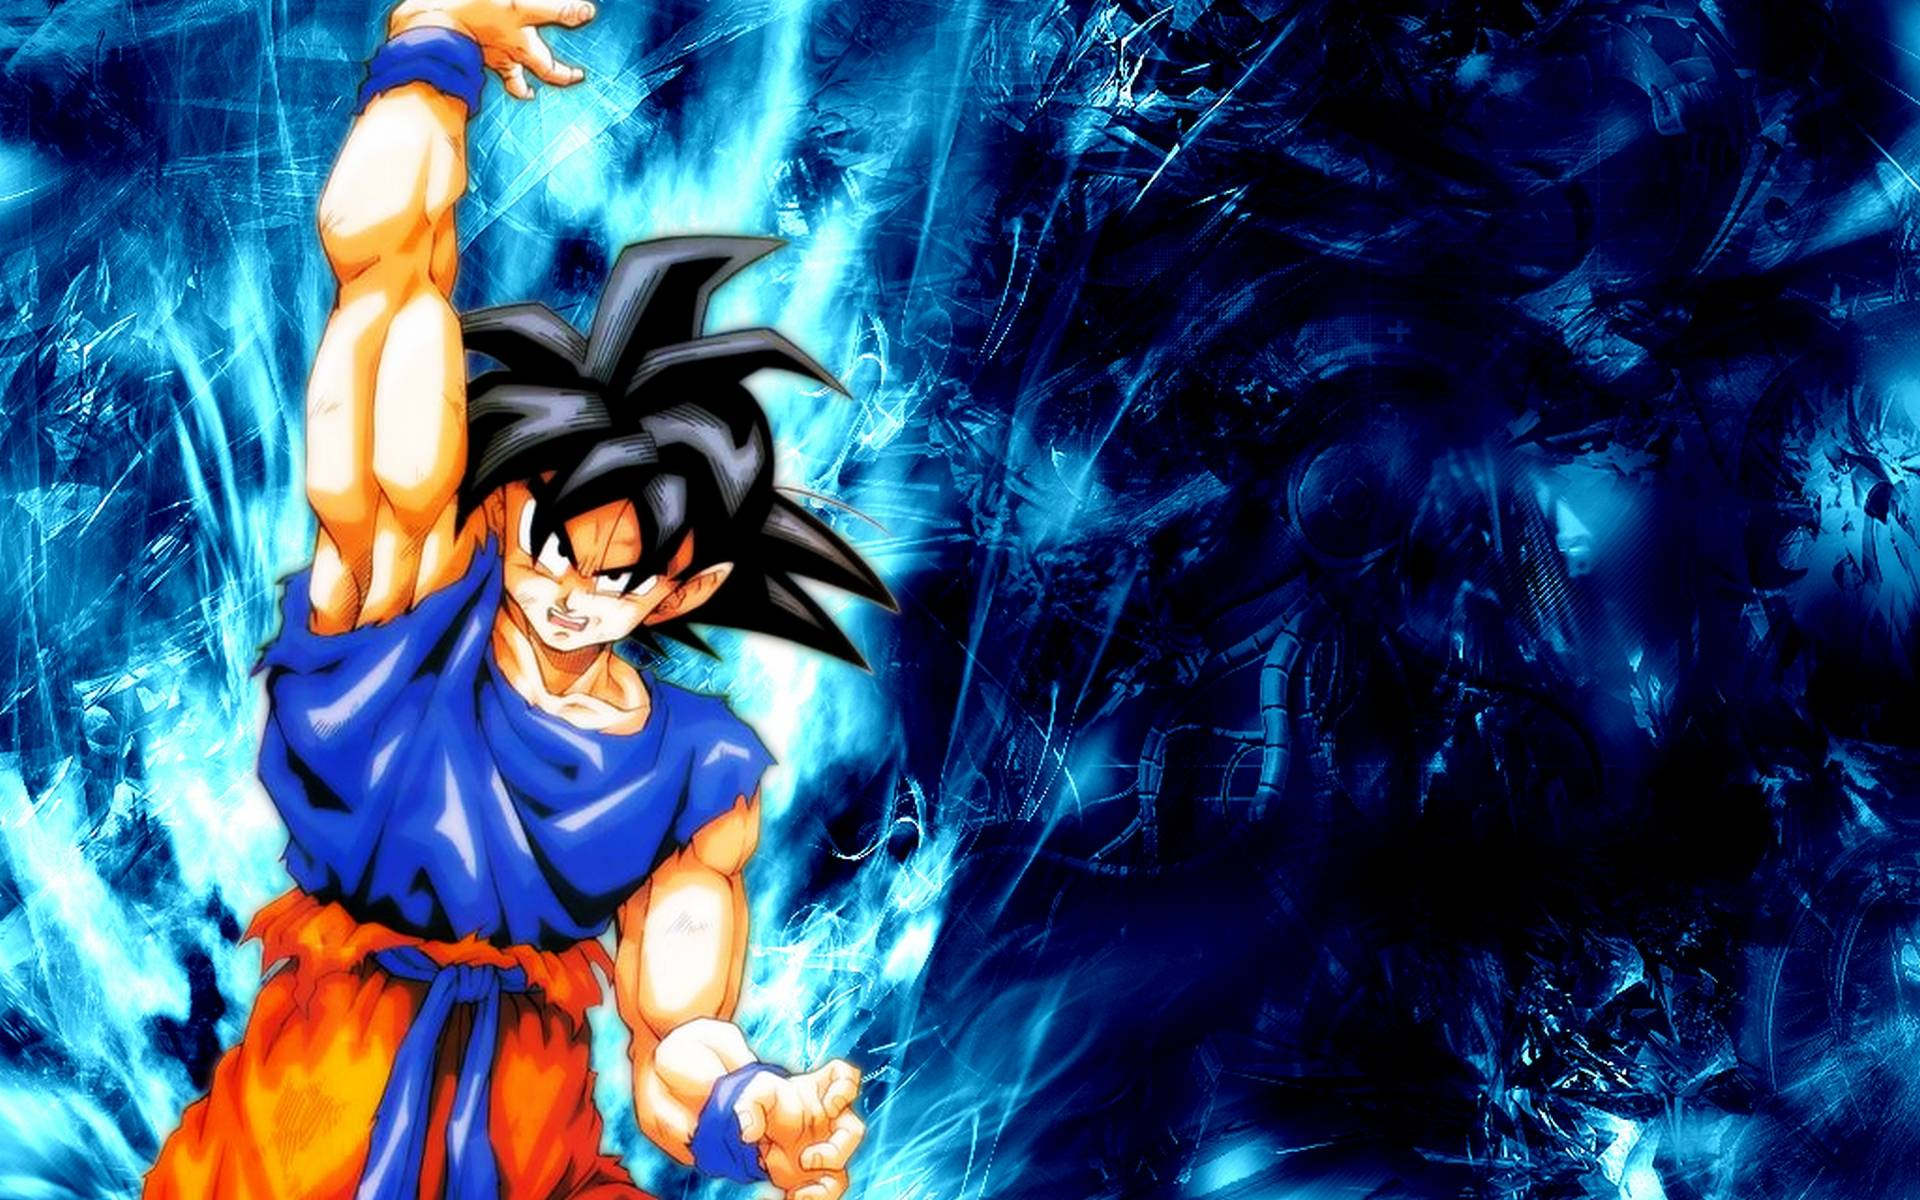 Son Goku Wallpapers - Wallpaper Cave